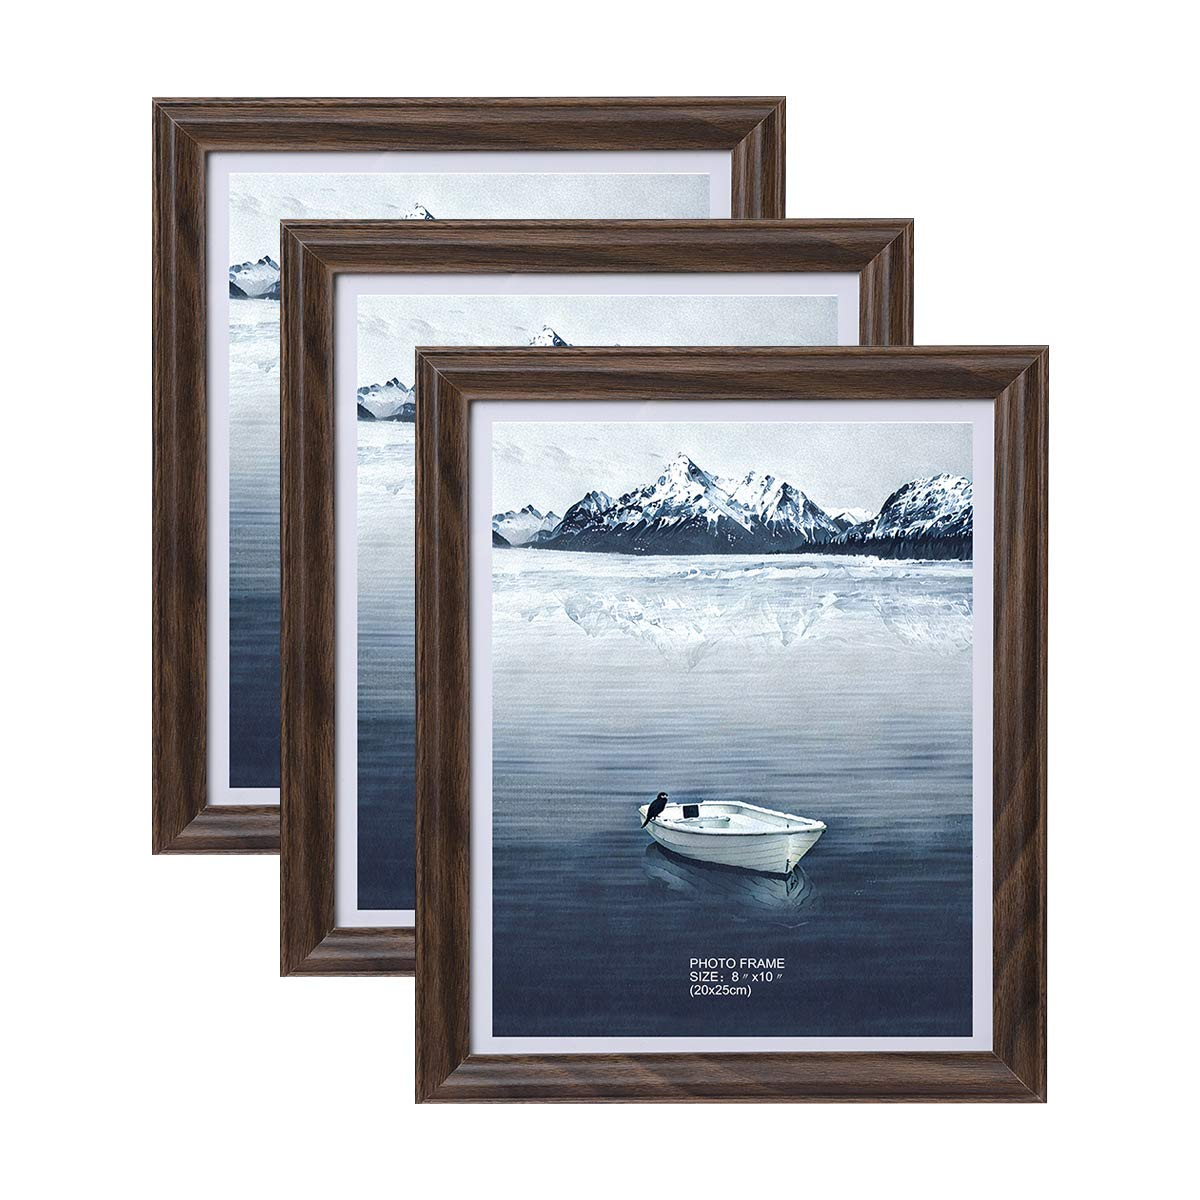 Metrekey 8x10 Photo Frames 3 Pack Brown Wood Picture Frame Set with High Definition Glass for Wall Mount & Table Top Display by Metrekey